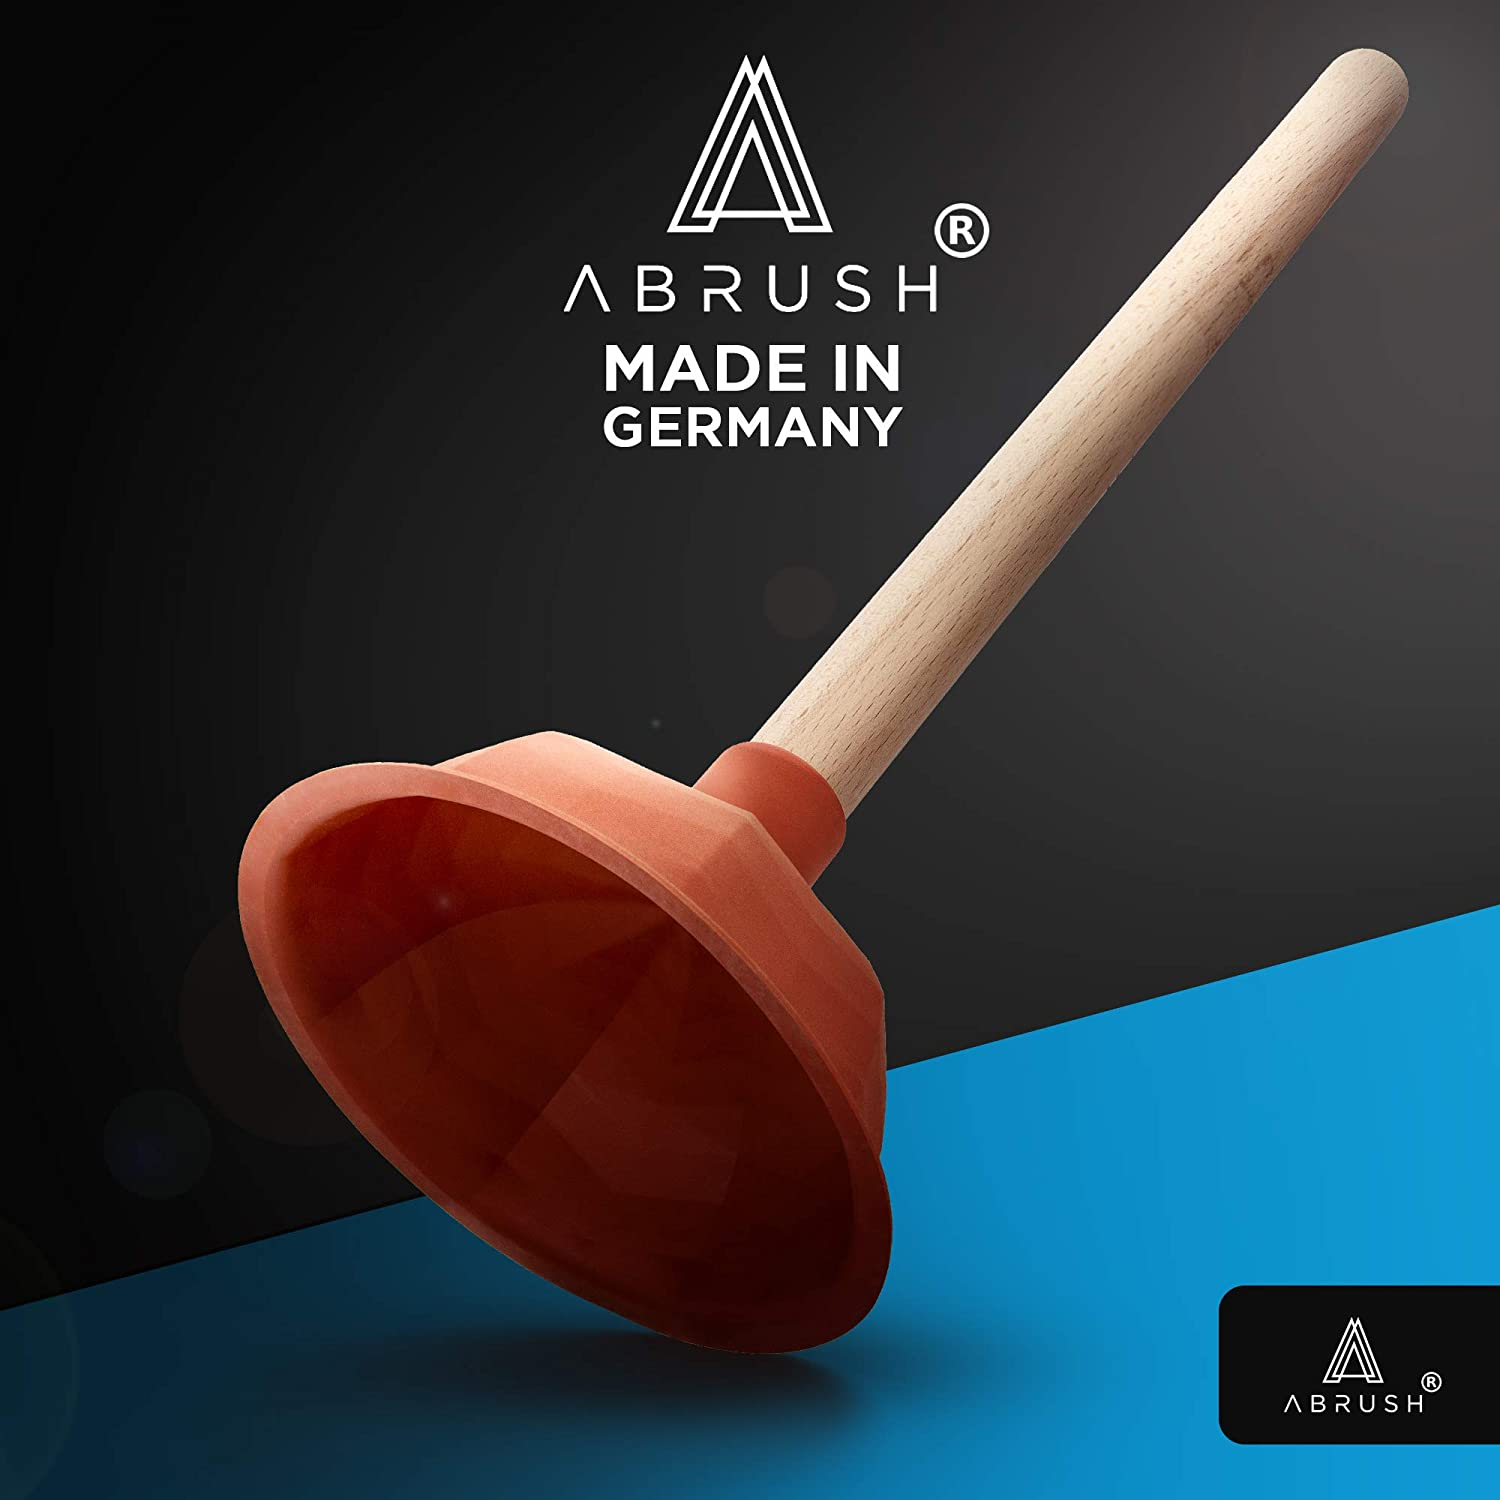 made in Germany Abrush Plunger for toilet 140 mm drain cleaner shower and kitchen rubber plunger drain cleaner universal suction cup for any drain